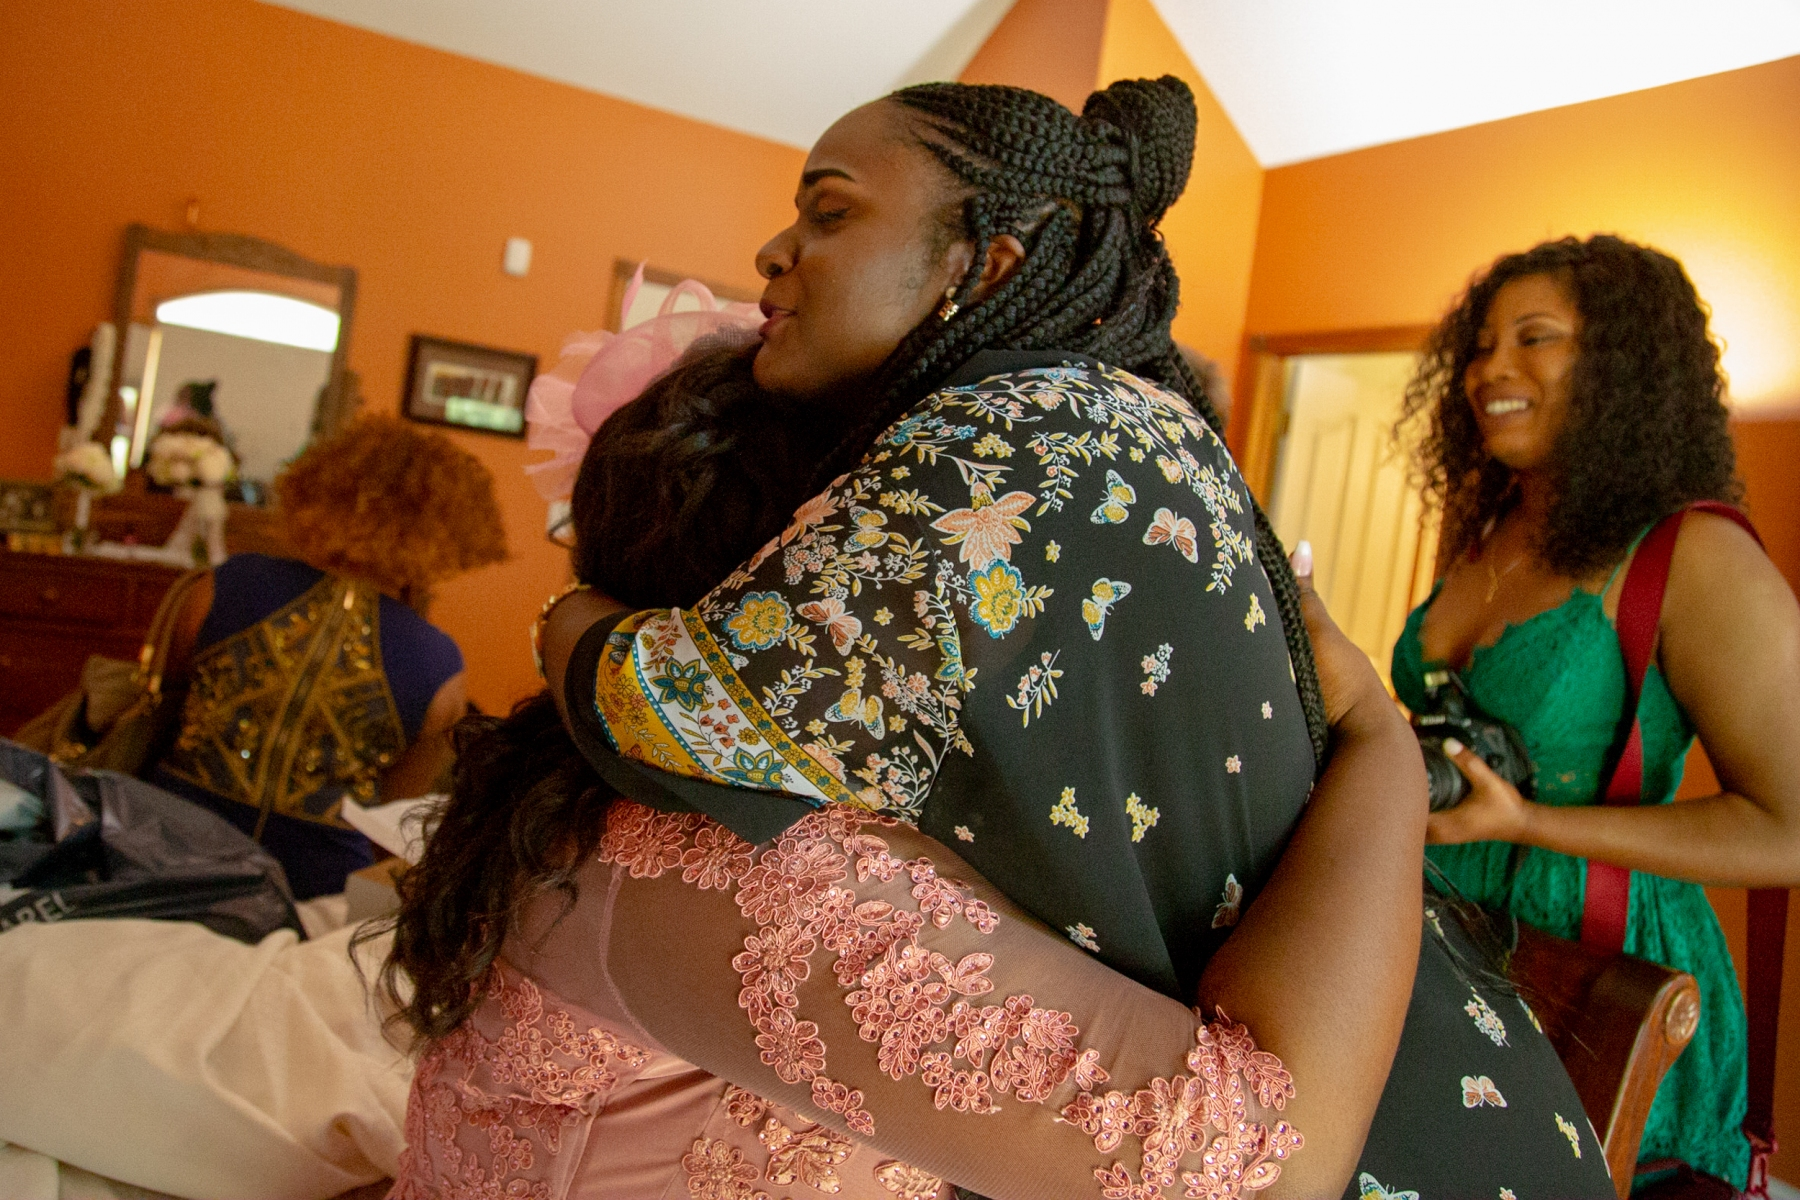 Pamela's friend from the Congo who is now studying in the US hugs Pamela as she prepares to walk down the aisle at her wedding in New Baltimore, Mich. In early 2018, Pamela met her now husband, Jordan, on a blind date to the movies.